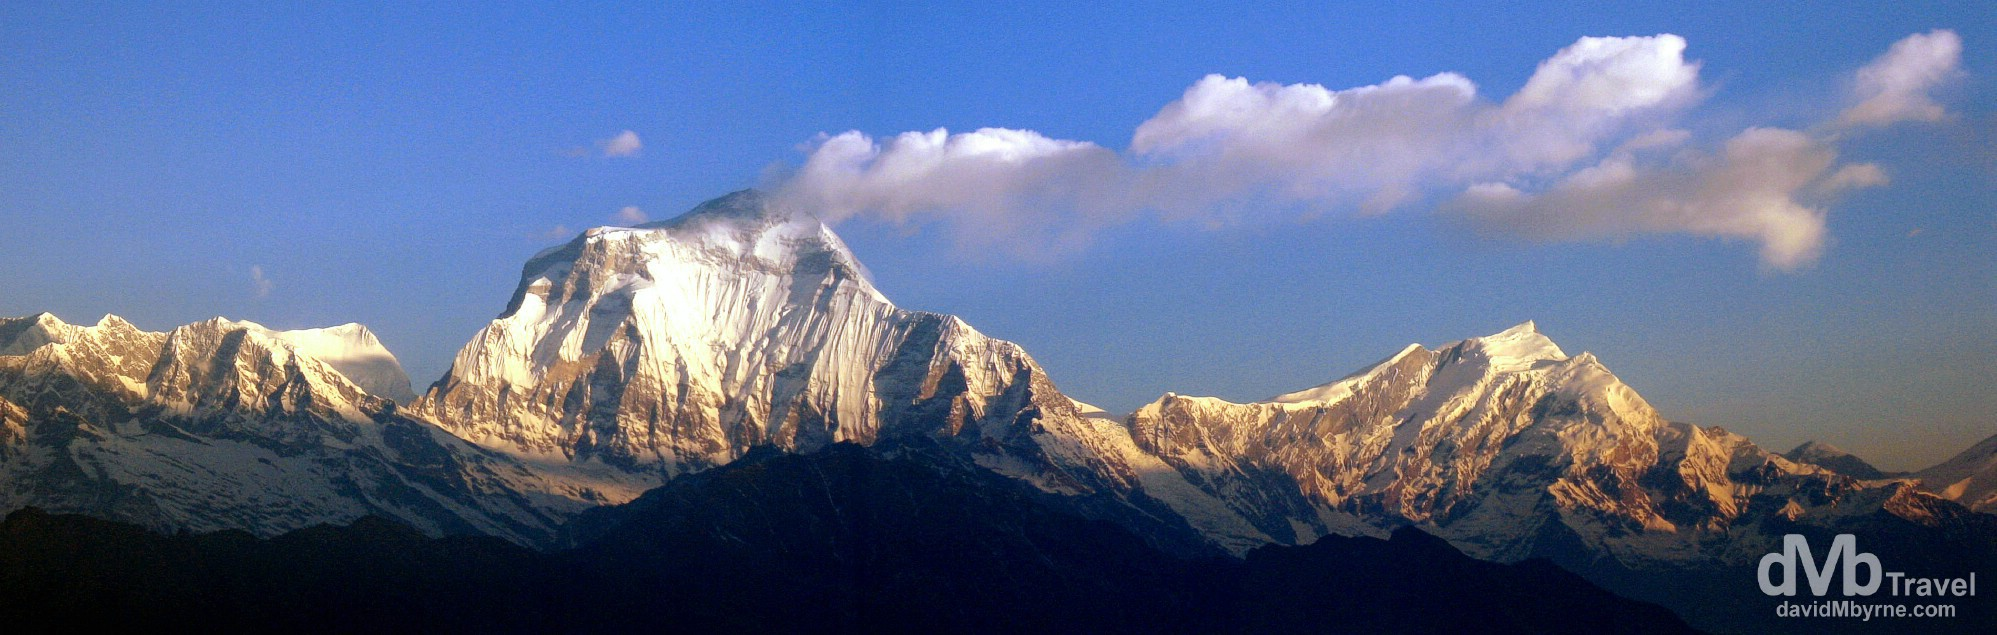 A panoramic picture of early sunrise on the face of Dhaulagiri (8,167 metres / 27,000 ft) as seen from Poon Hill, Annapurna Conservation Area, western Nepal. March 12th, 2008.